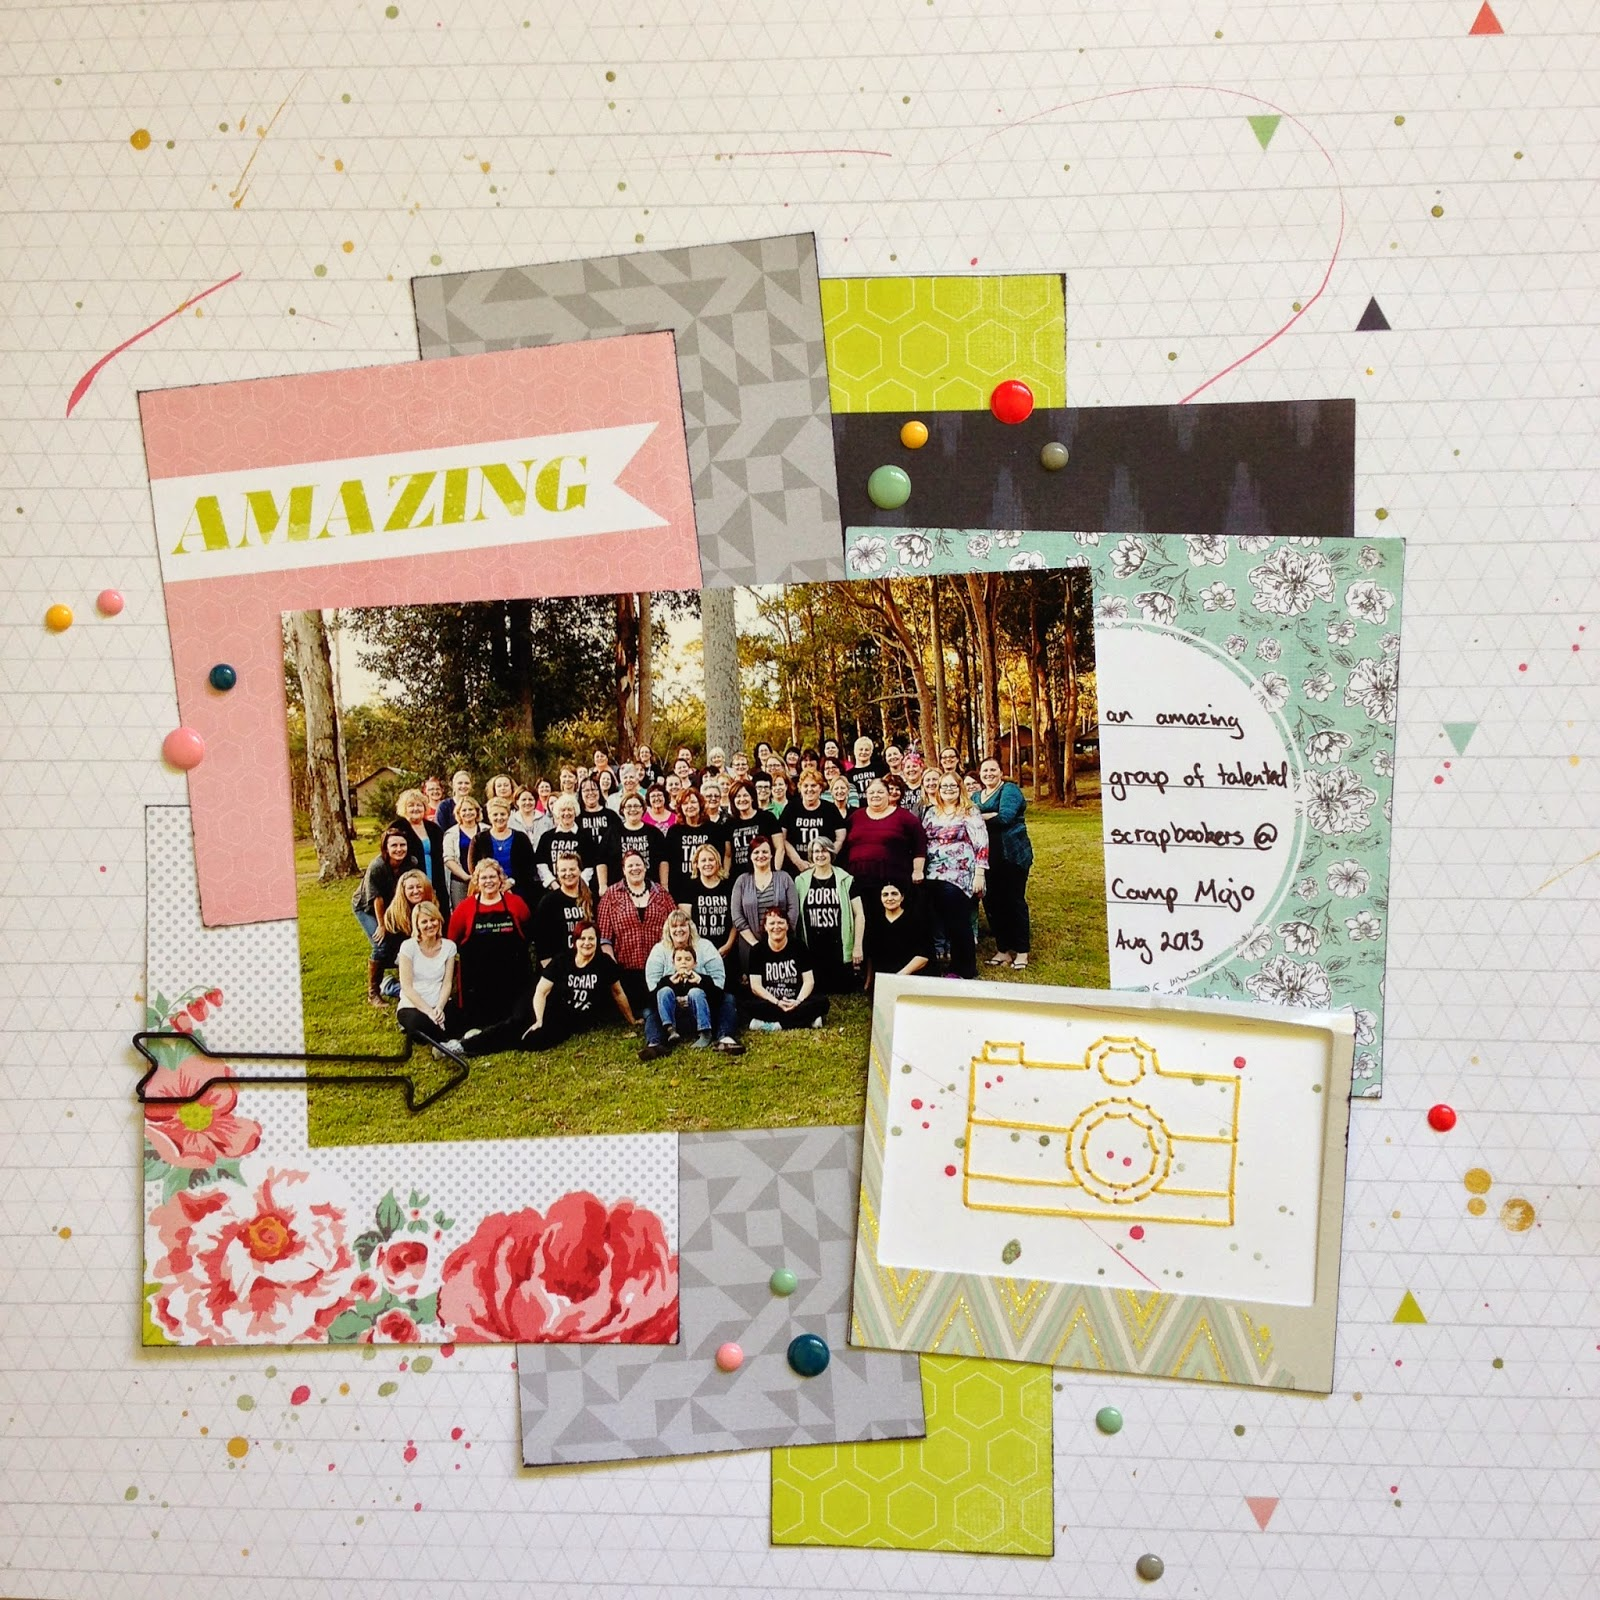 'Amazing' - Layout by Tracey Kinny for Dizzy Izzy Scrapbooking